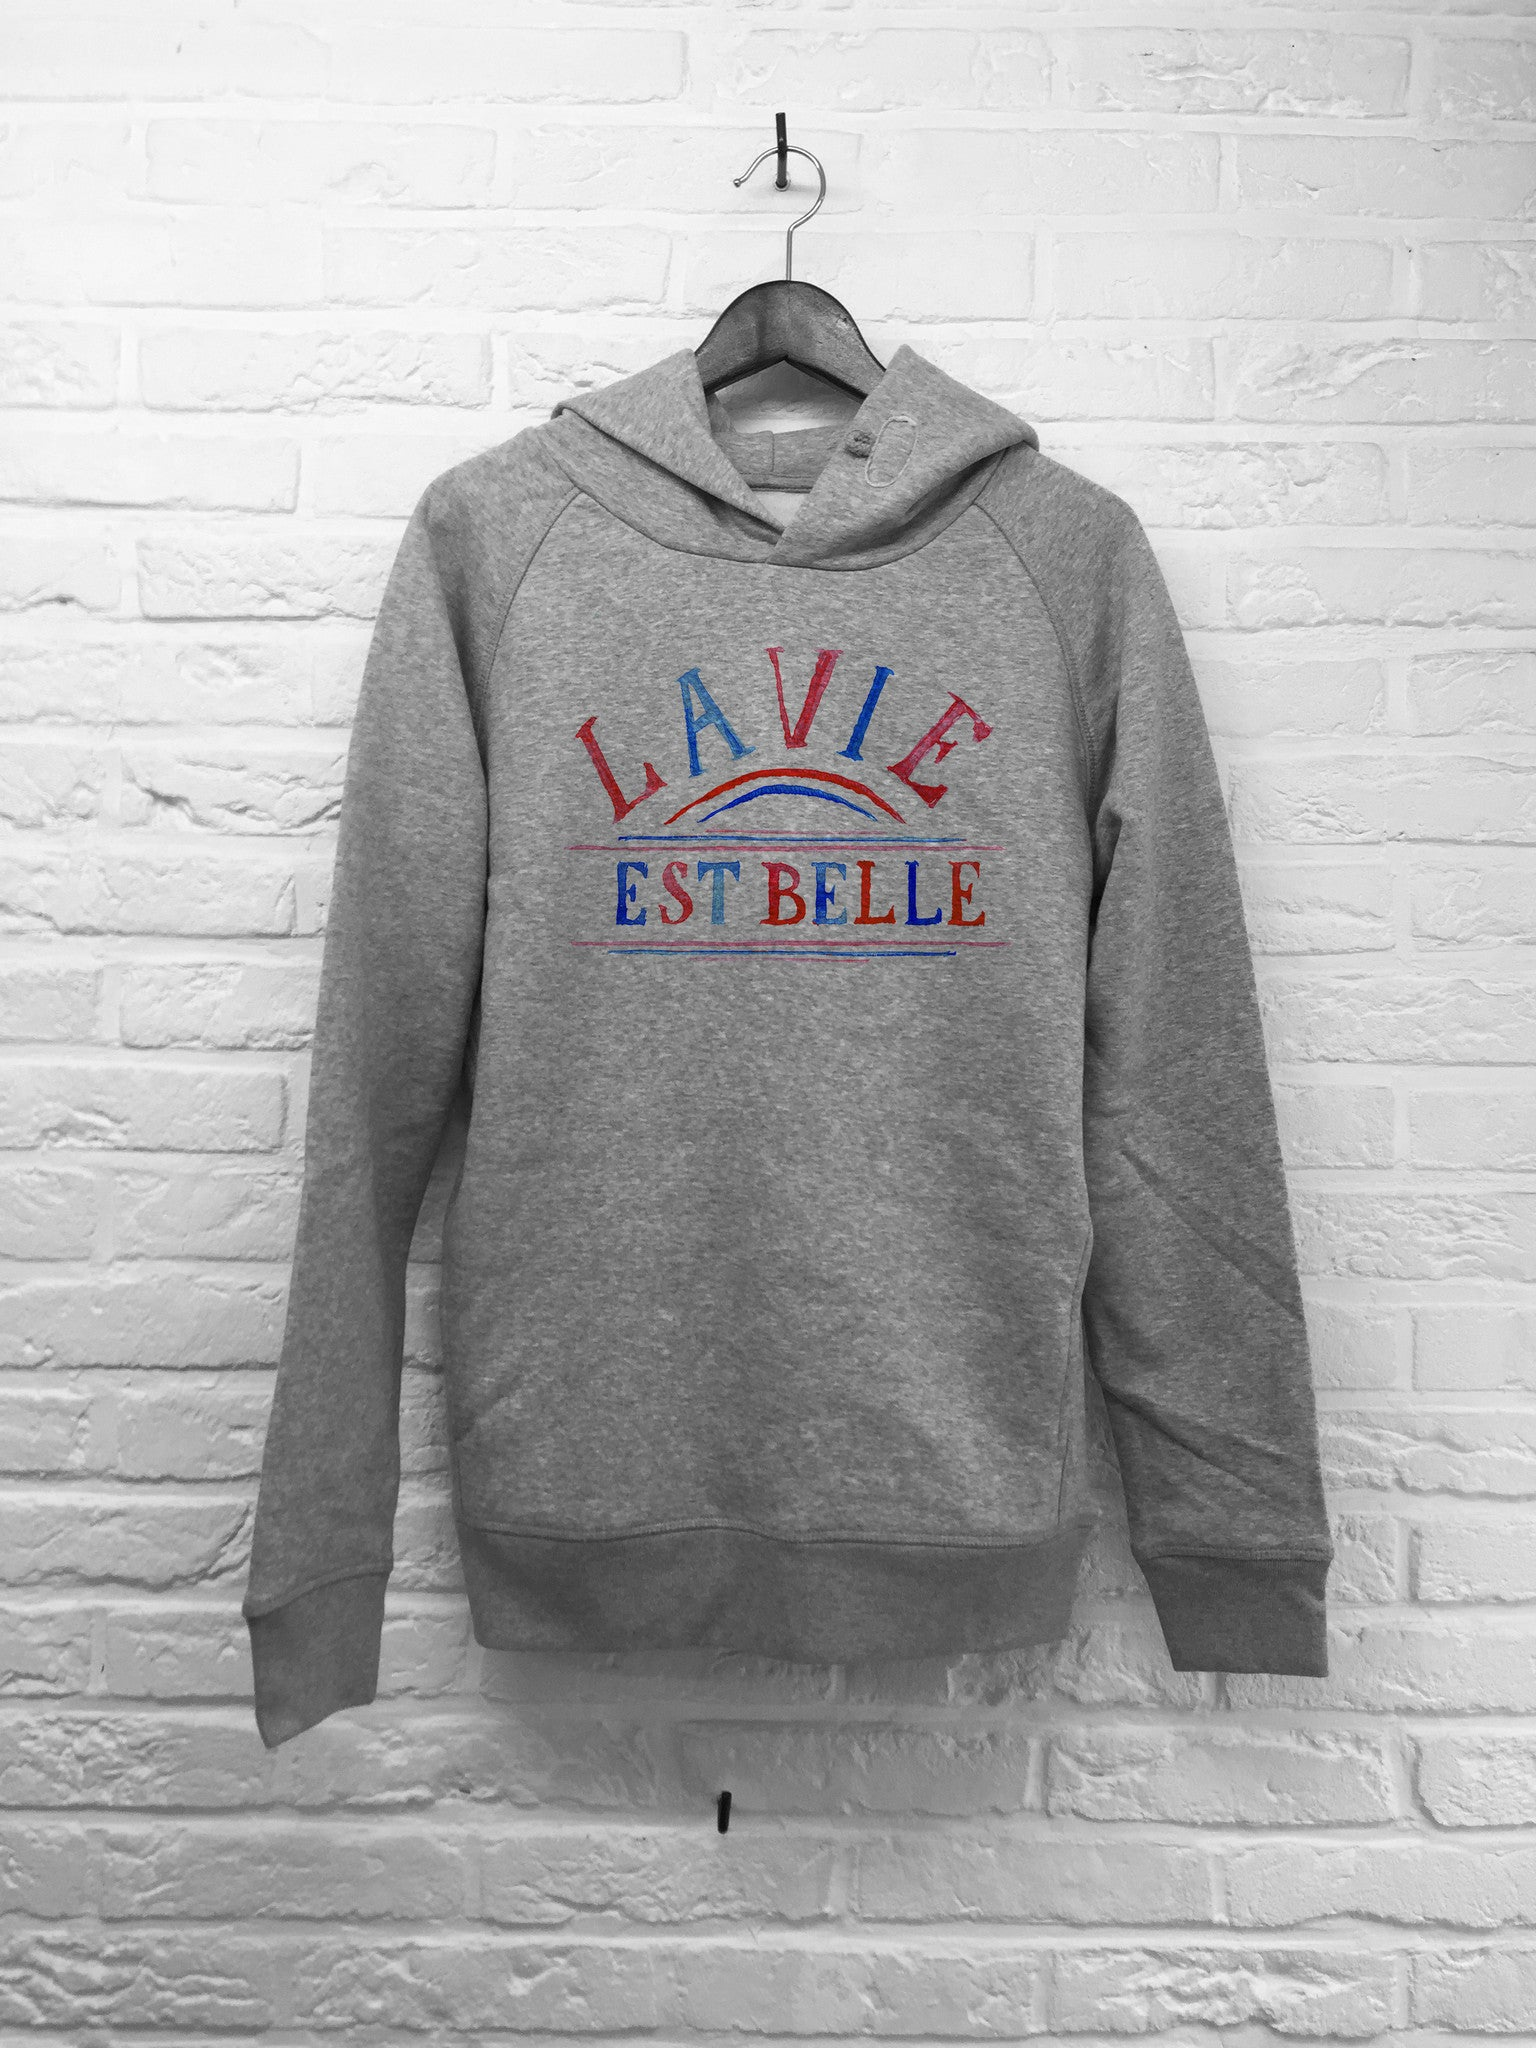 TH Gallery - La vie est belle (bleu rouge) - Hoodies Deluxe Creme gris